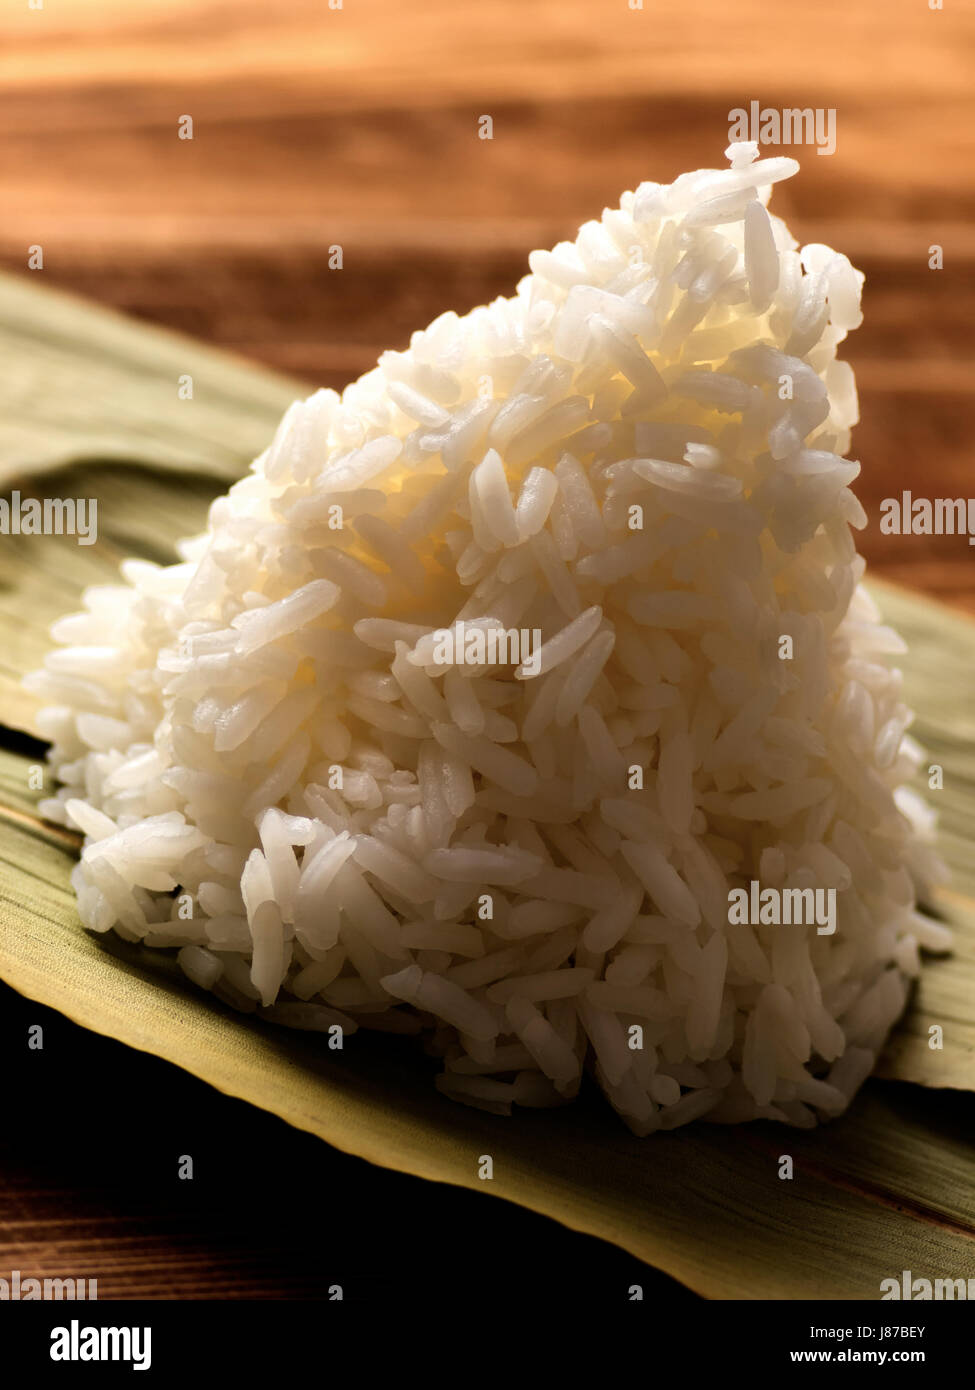 asian, polished, steamed, cooked, starch, carbohydrate, white, rice, food, - Stock Image